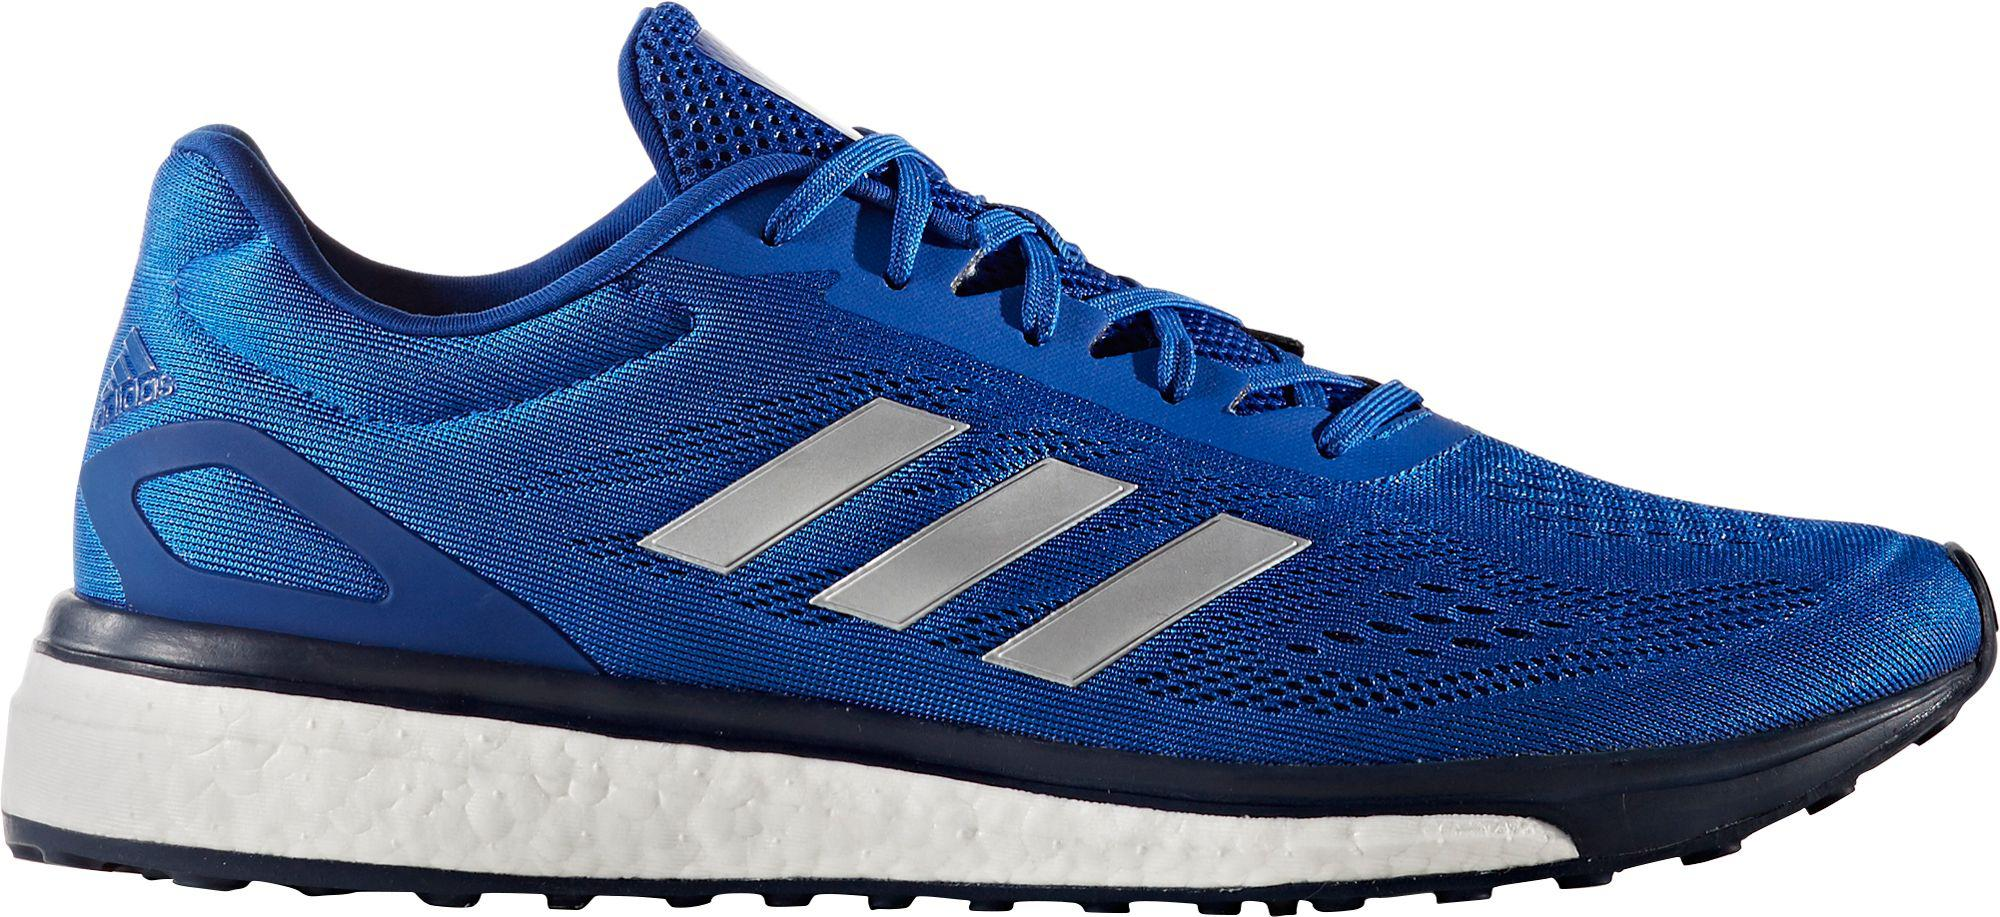 best loved 5d154 72cf6 adidas Sonic Drive Running Shoes in Blue for Men - Lyst